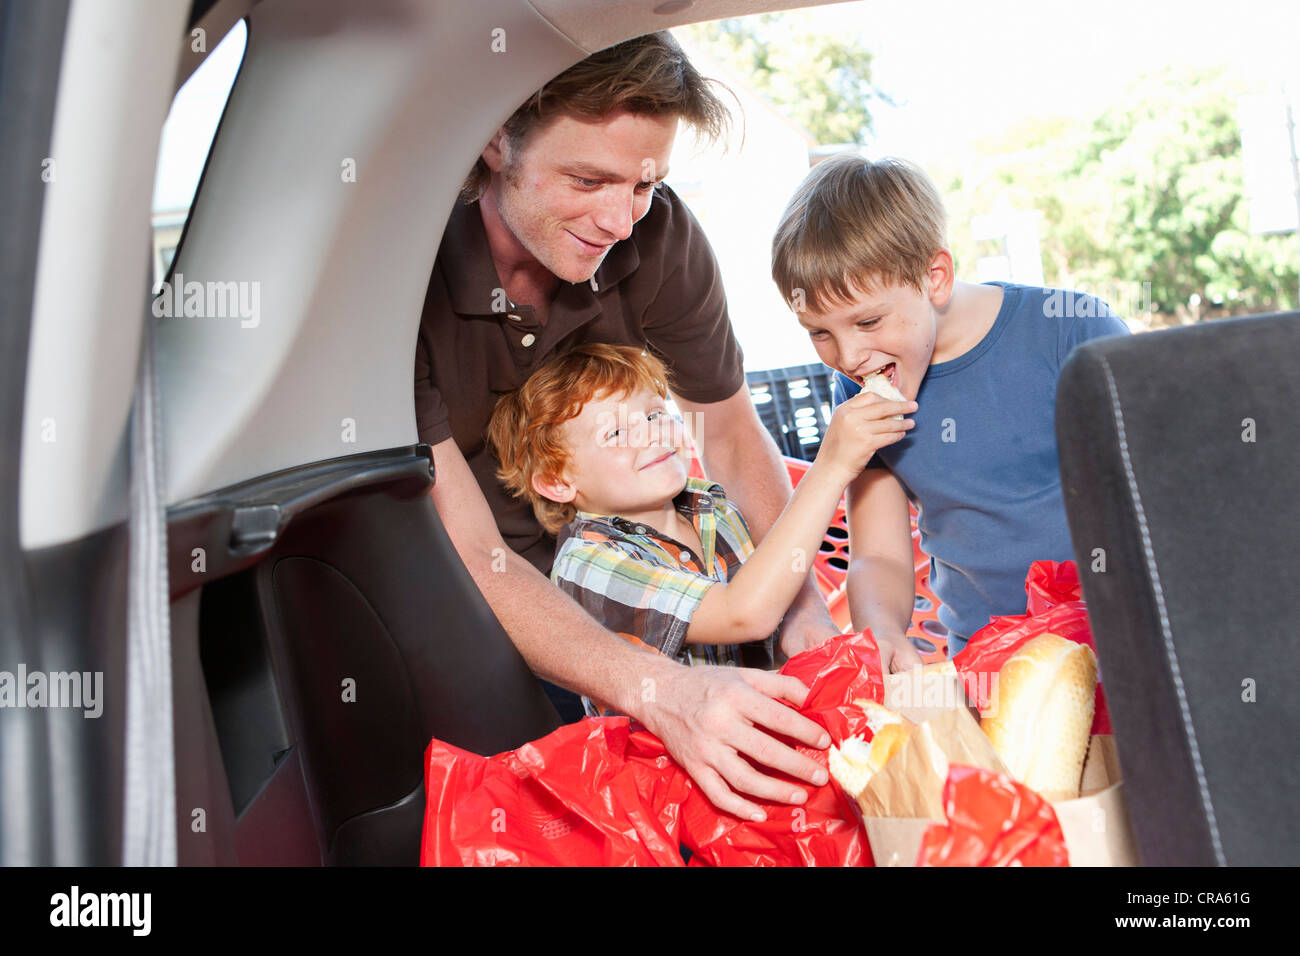 Boys eating groceries in trunk of car - Stock Image